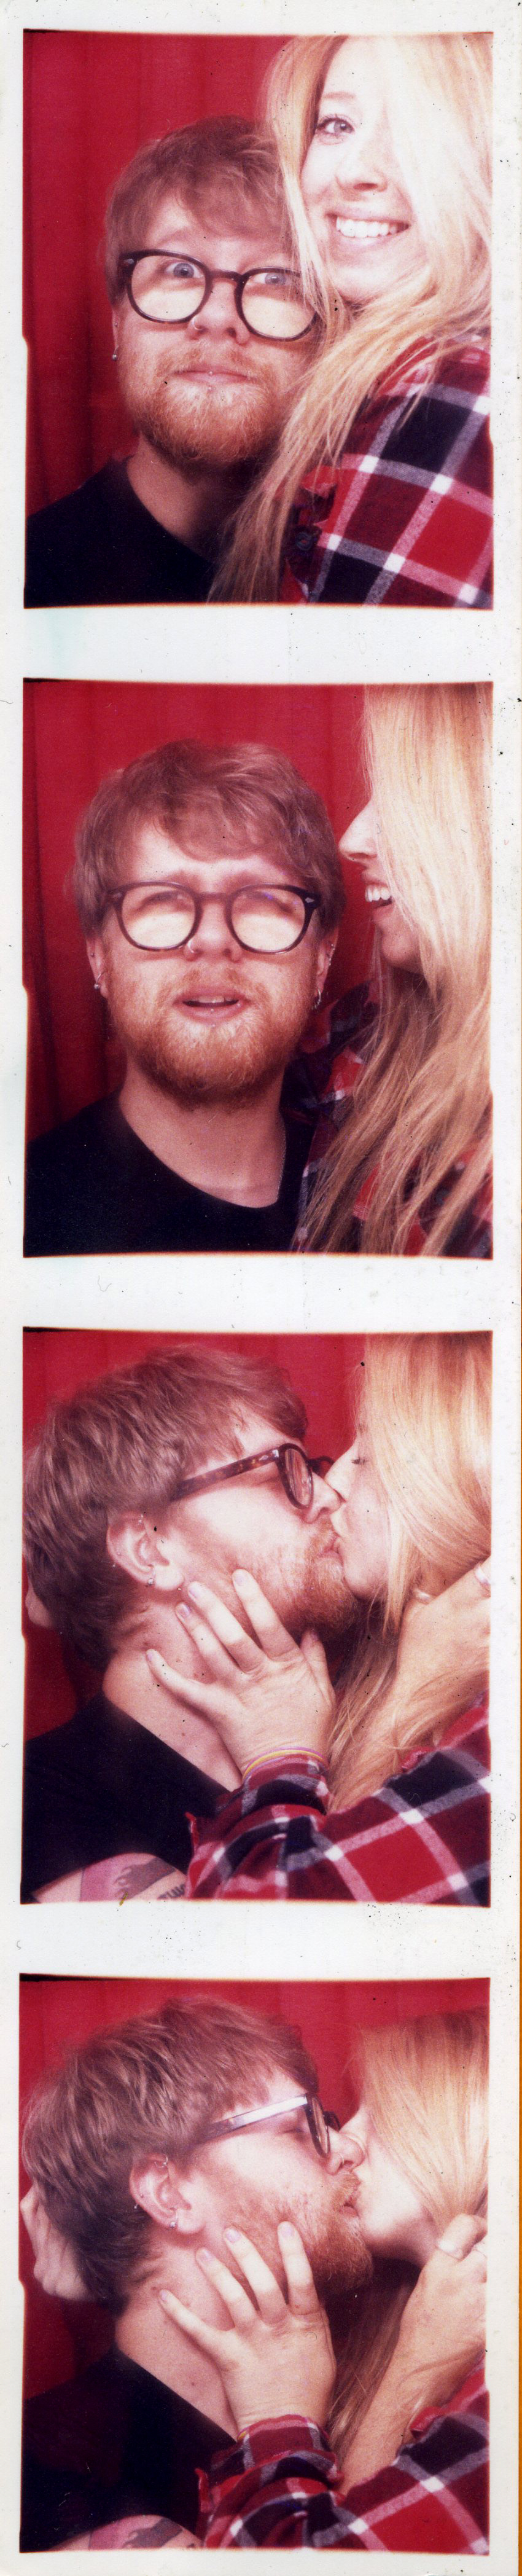 Denver Photo-booth